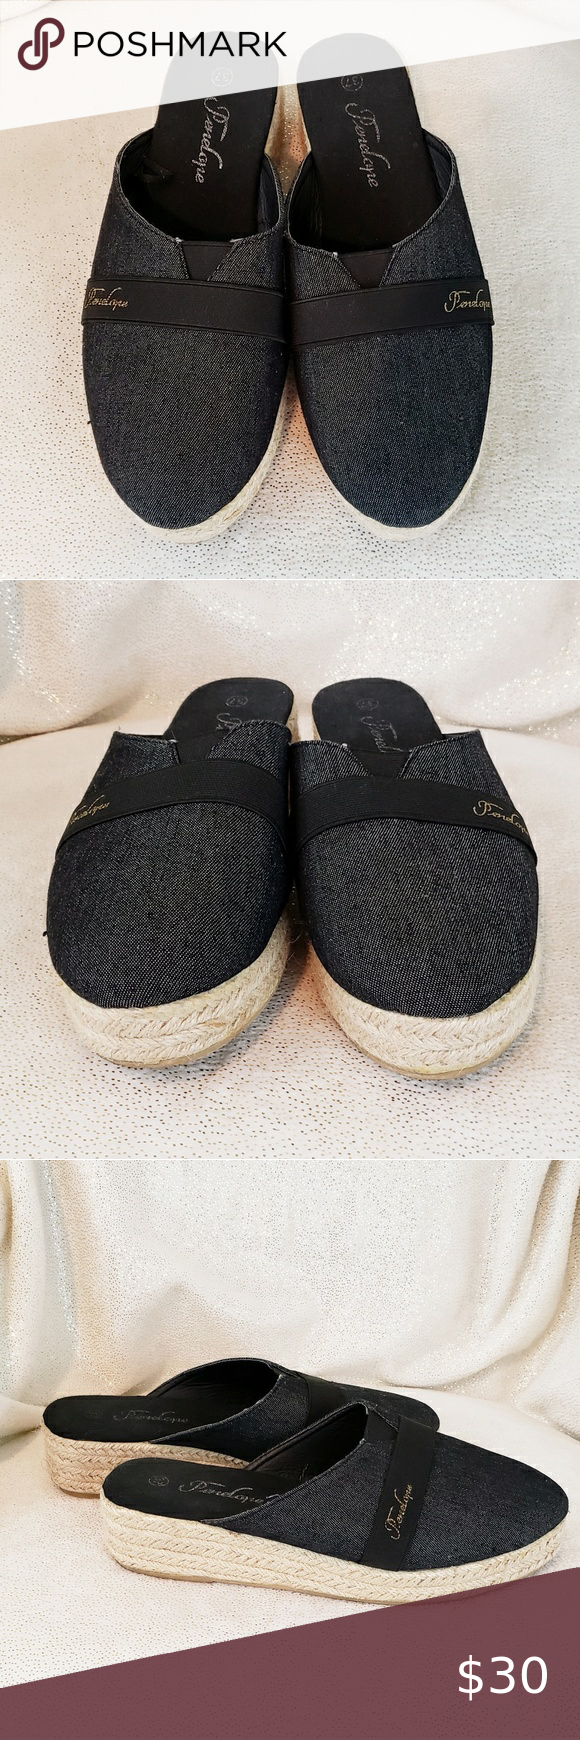 Penelope Chilvers Espadrille-style Slip-on Shoes